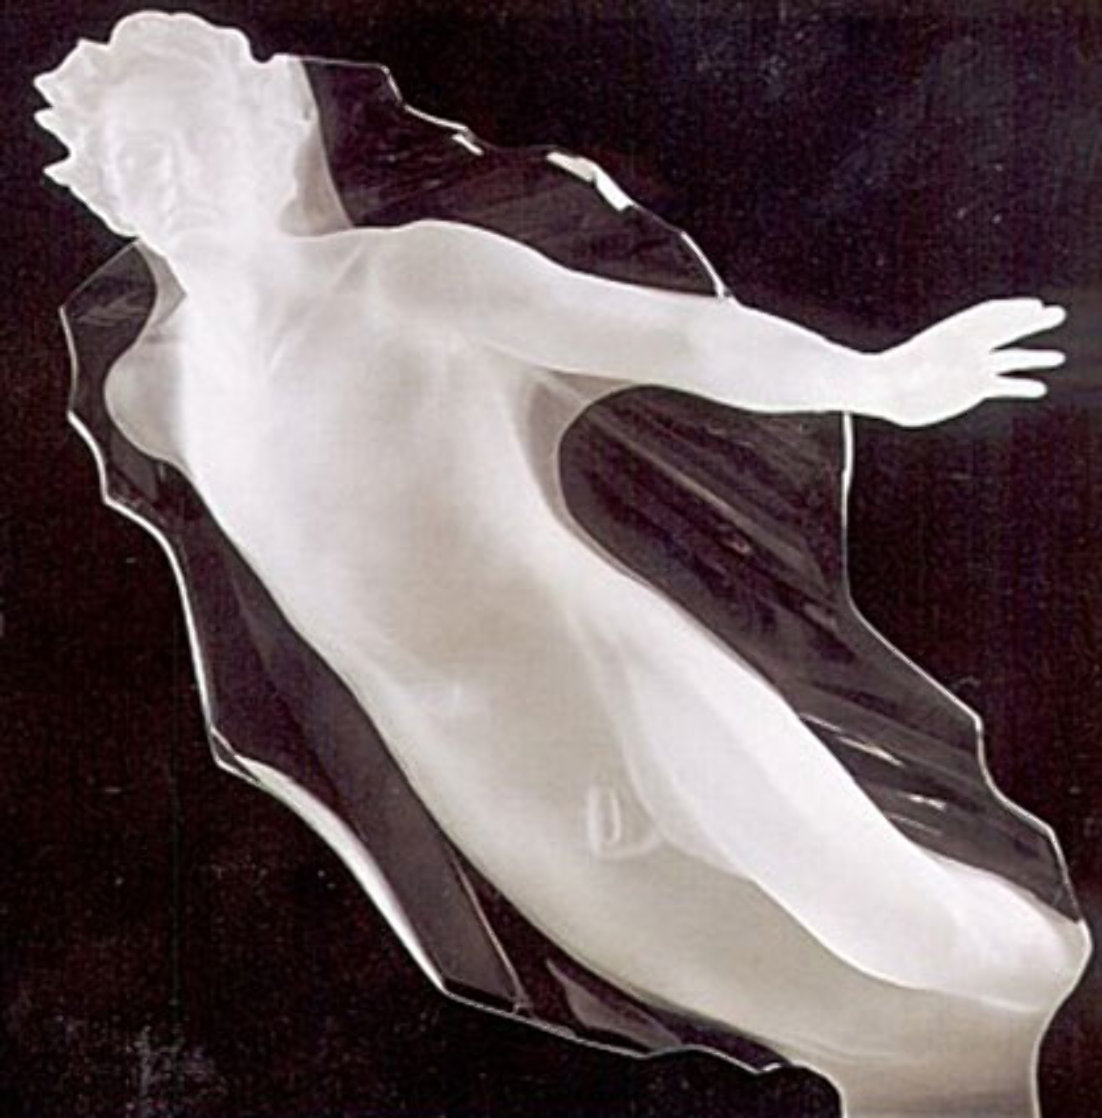 Sacred Mysteries Male Acrylic Sculpture 1983 30 in  Sculpture by Frederick Hart